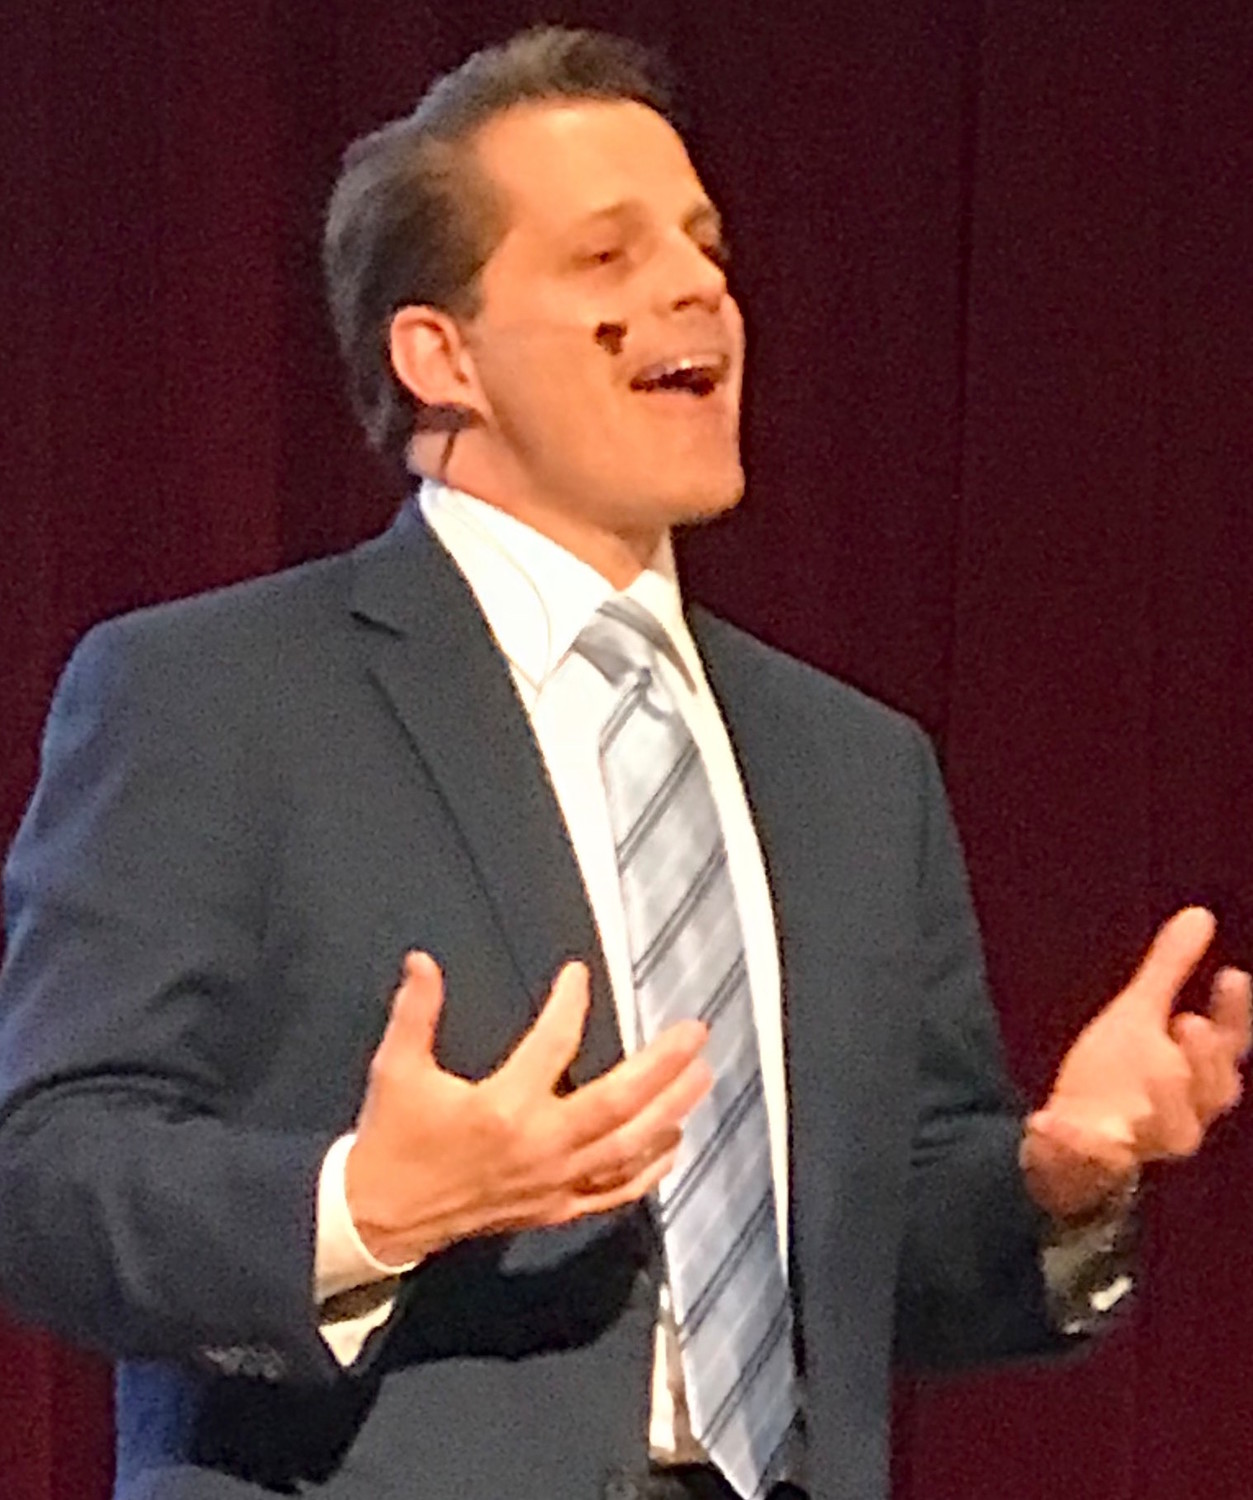 Anthony Scaramucci delivering keynote address at Jewish business-to-business expo.